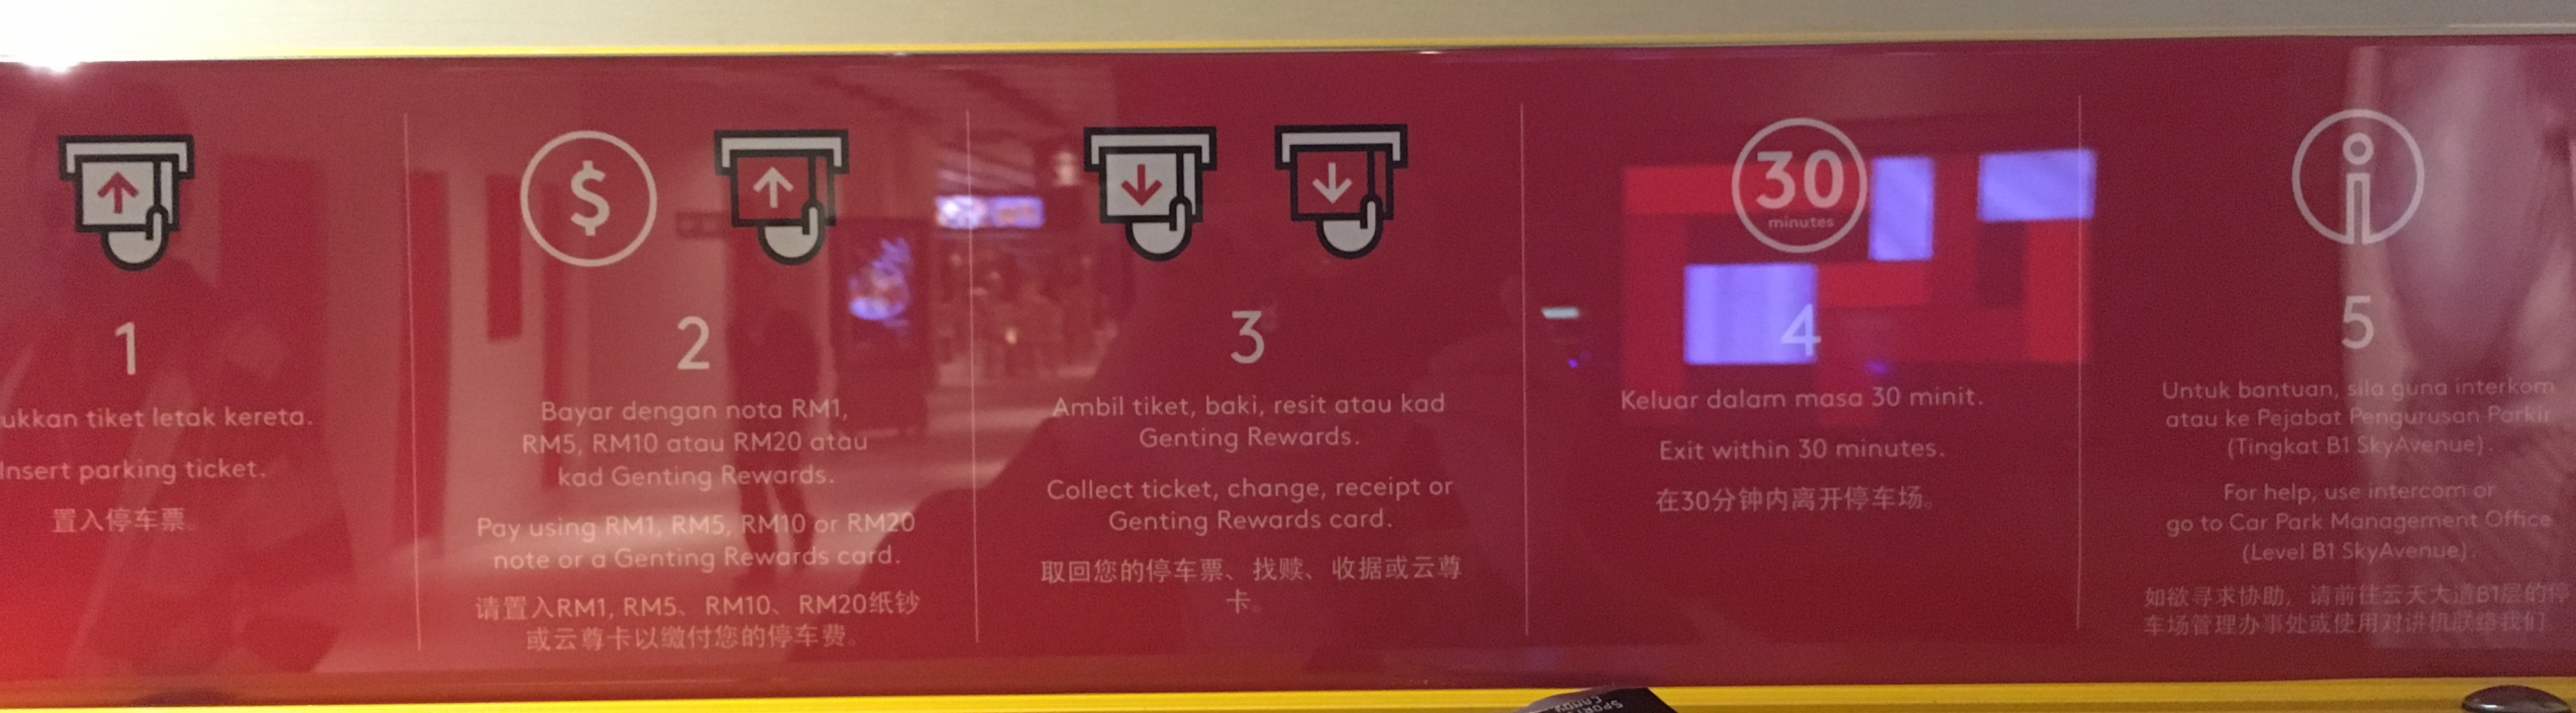 Resorts World Genting Parking Fees